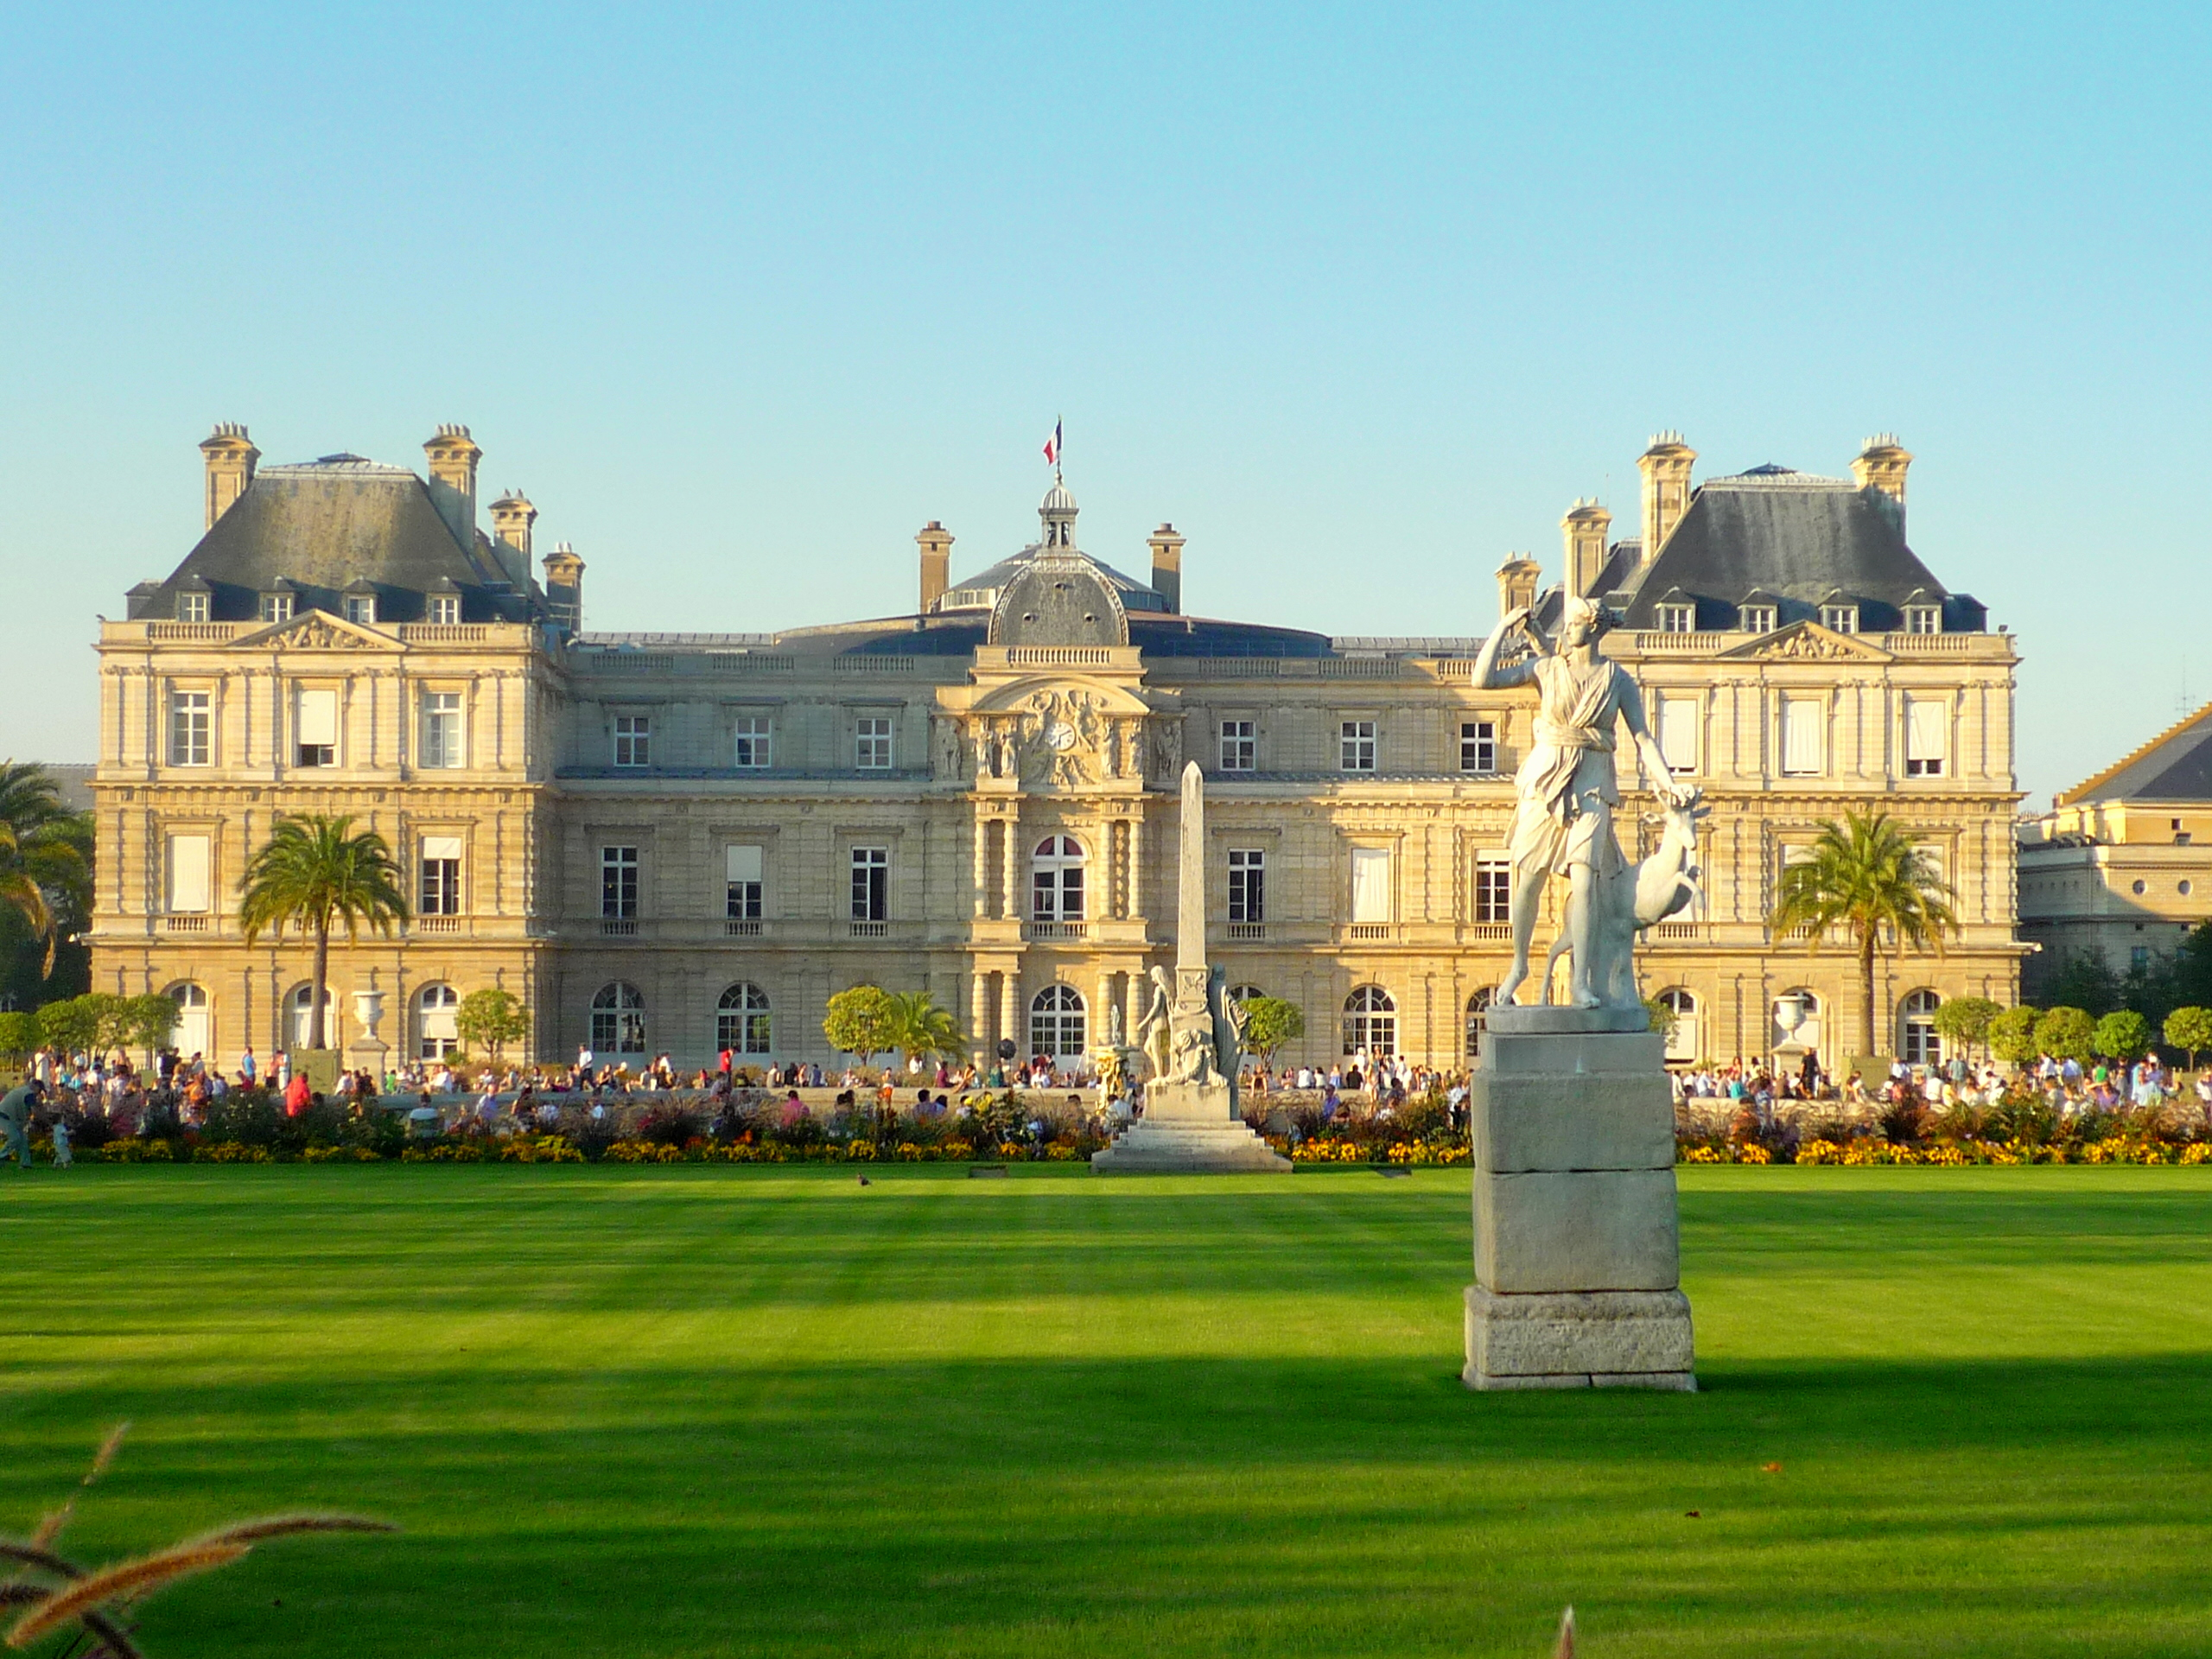 Jardin-du-Luxembourg-37-%C2%A9-French-Moments.jpg